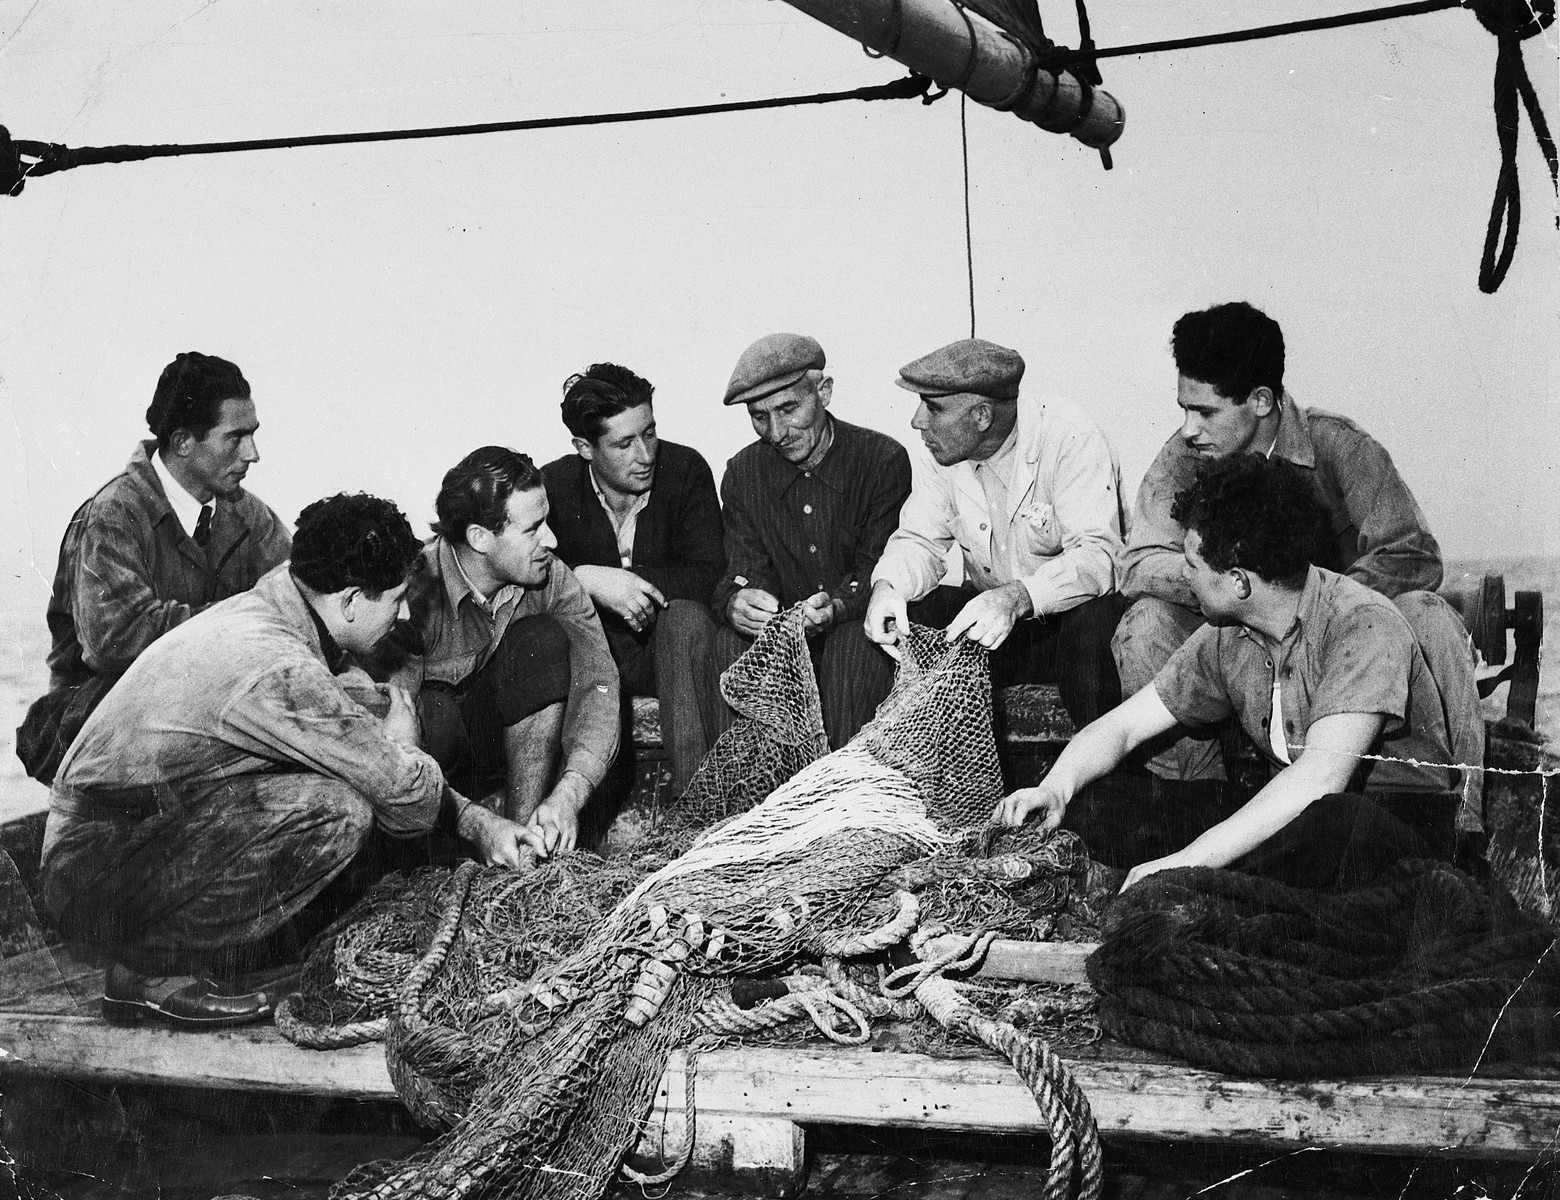 Italian instructors show Jewish DPs how to use fishing nets at the Migdalor hachshara, a maritime Zionist collective in Fano, Italy.  In the center is the instructor, Meletti Fano.  To his left are Ackerman, Patt and Yuzek Kempler.